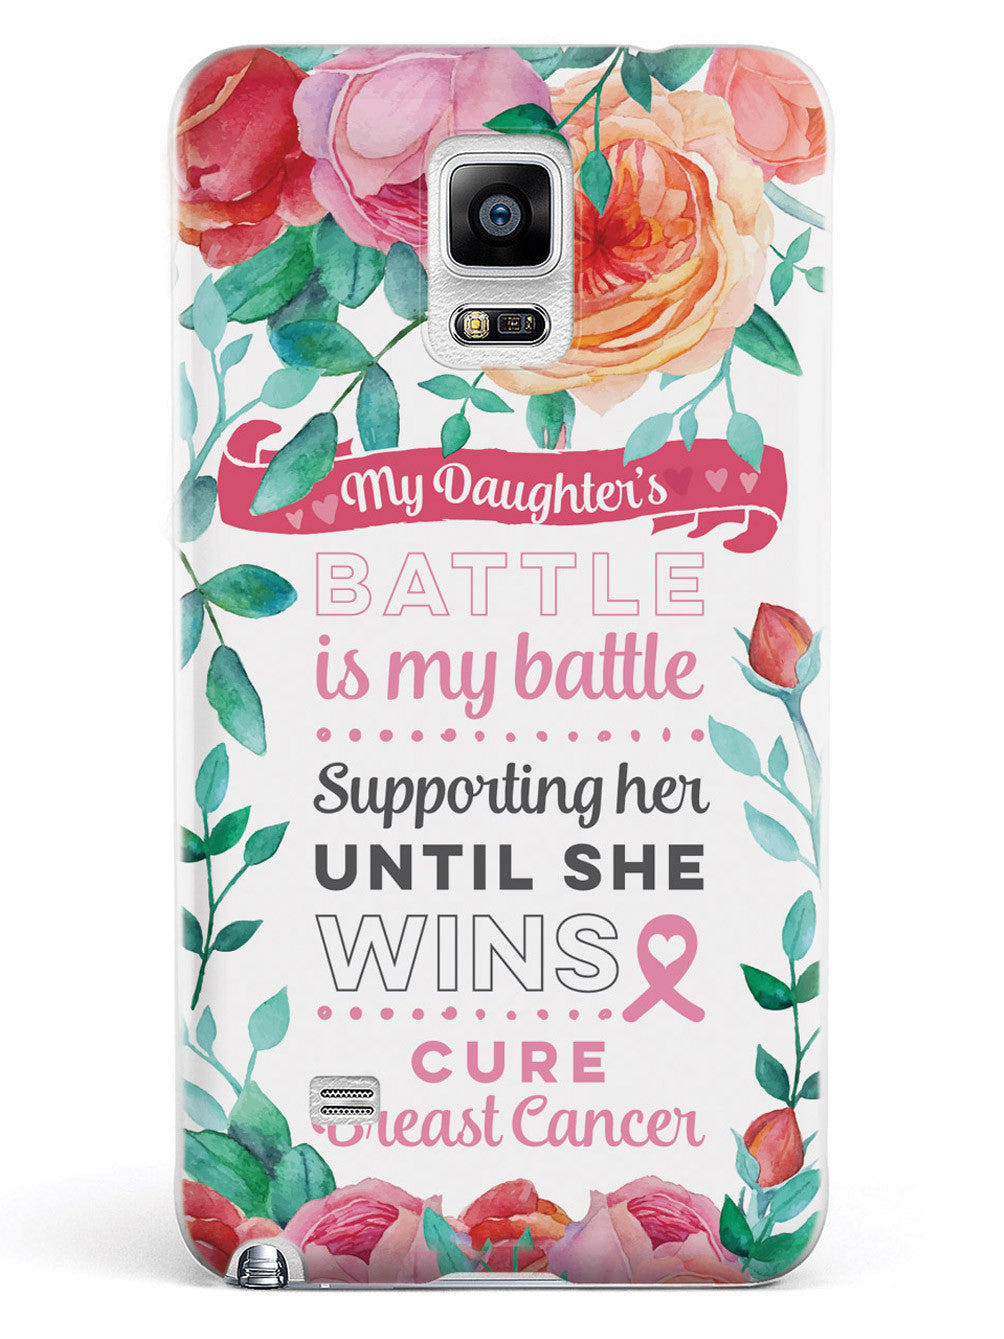 My Daughter's Battle - Breast Cancer Awareness Case